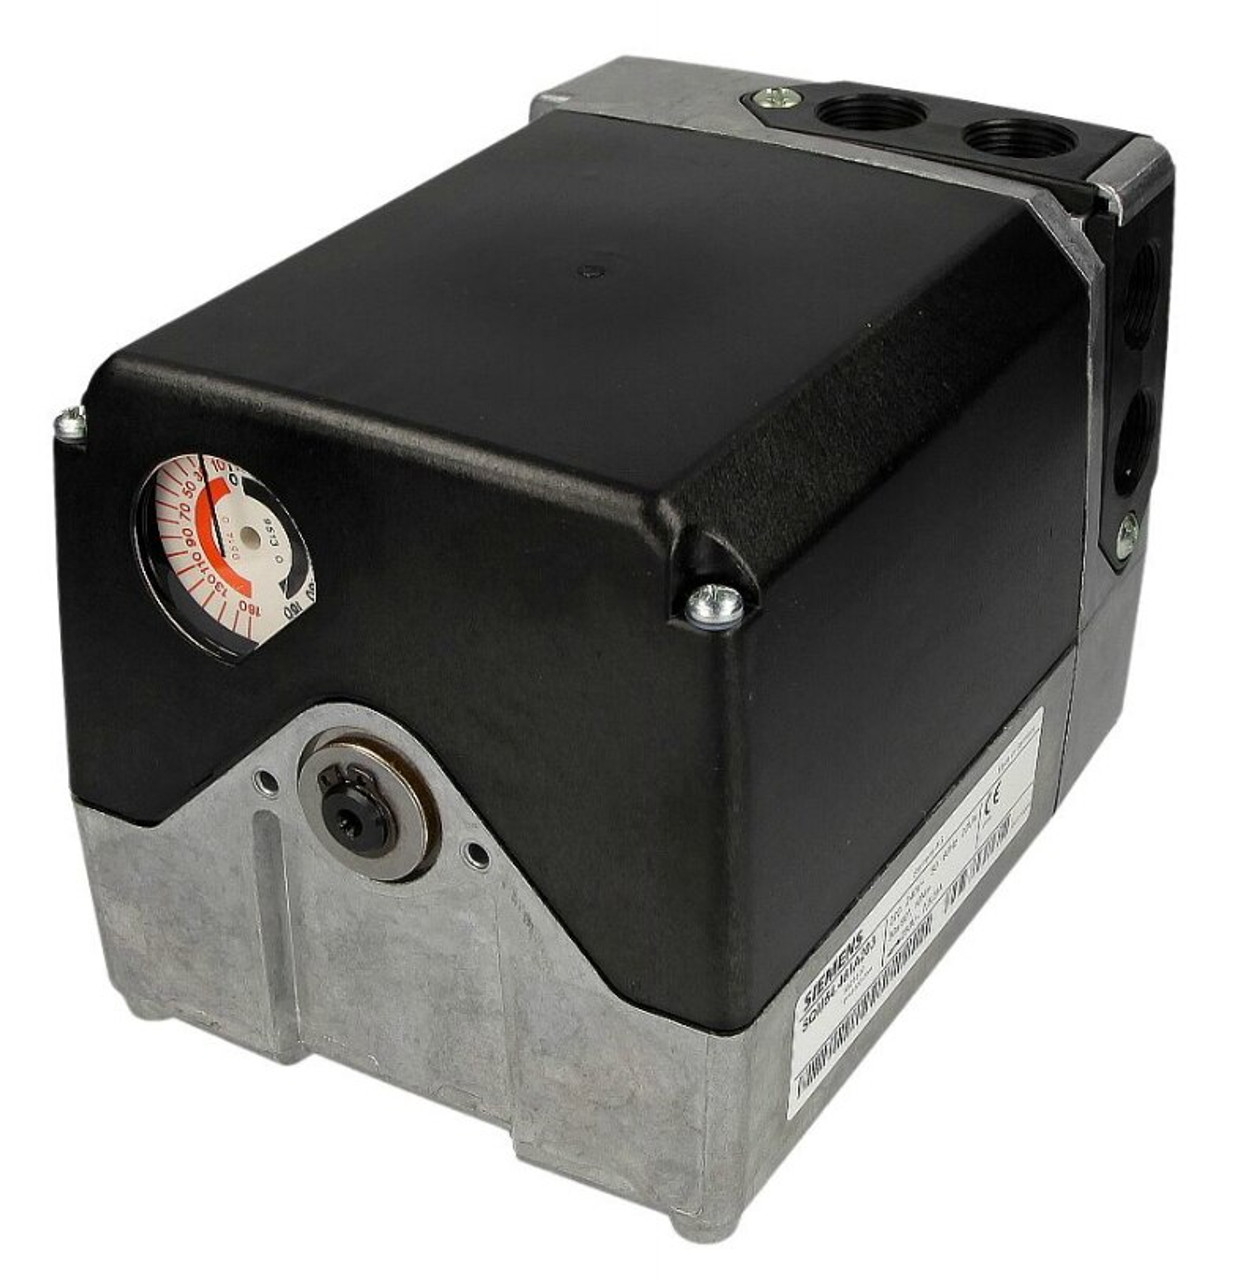 Siemens SQM50.464R1G3R, Actuators for Air and Gas Dampers with electronic modules